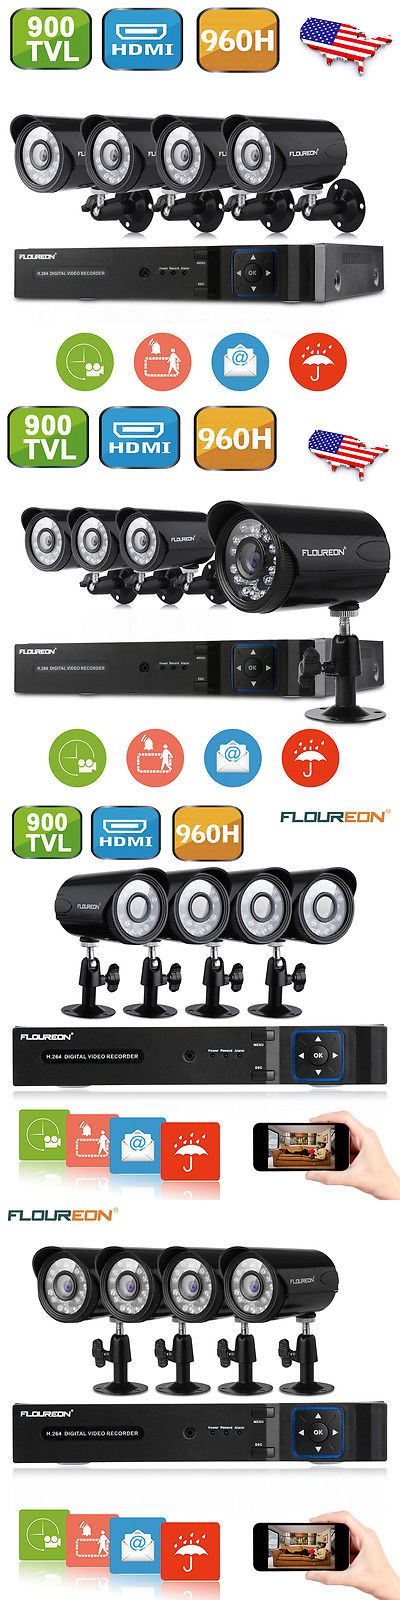 Surveillance Security Systems: Floureon 8 Channel Hdmi Dvr 960H Cctv Outdoor 900Tvl Home Security Camera System -> BUY IT NOW ONLY: $79.79 on eBay!